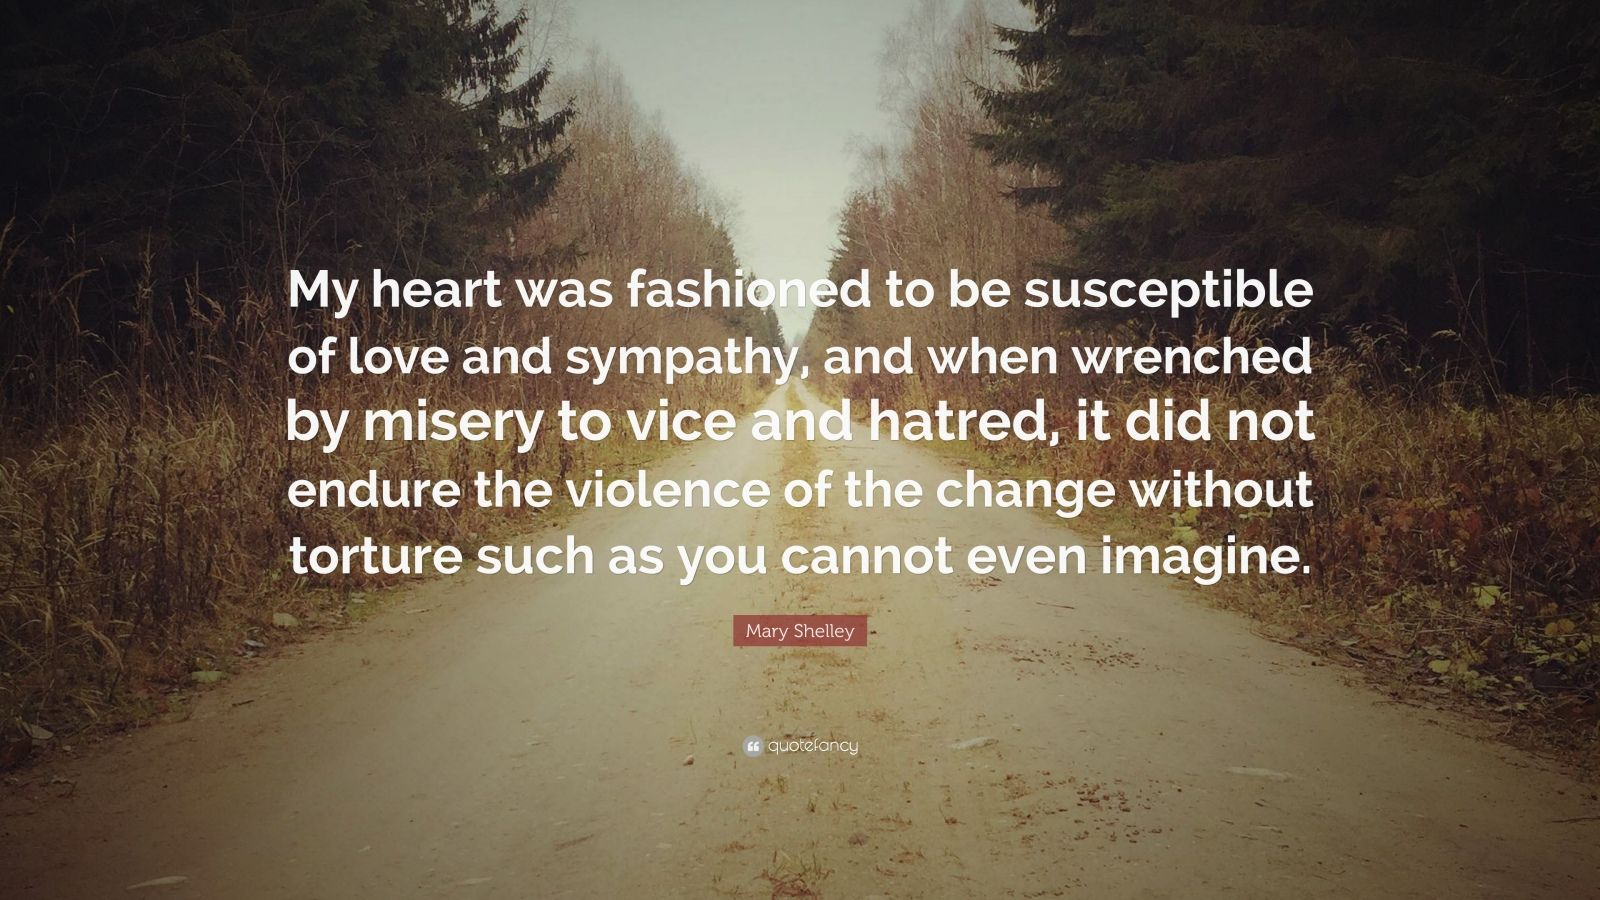 """Mary Shelley Quote: """"My heart was fashioned to be susceptible of love and sympathy, and when wrenched by misery to vice and hatred, it did not endure the violence of the change without torture such as you cannot even imagine."""""""